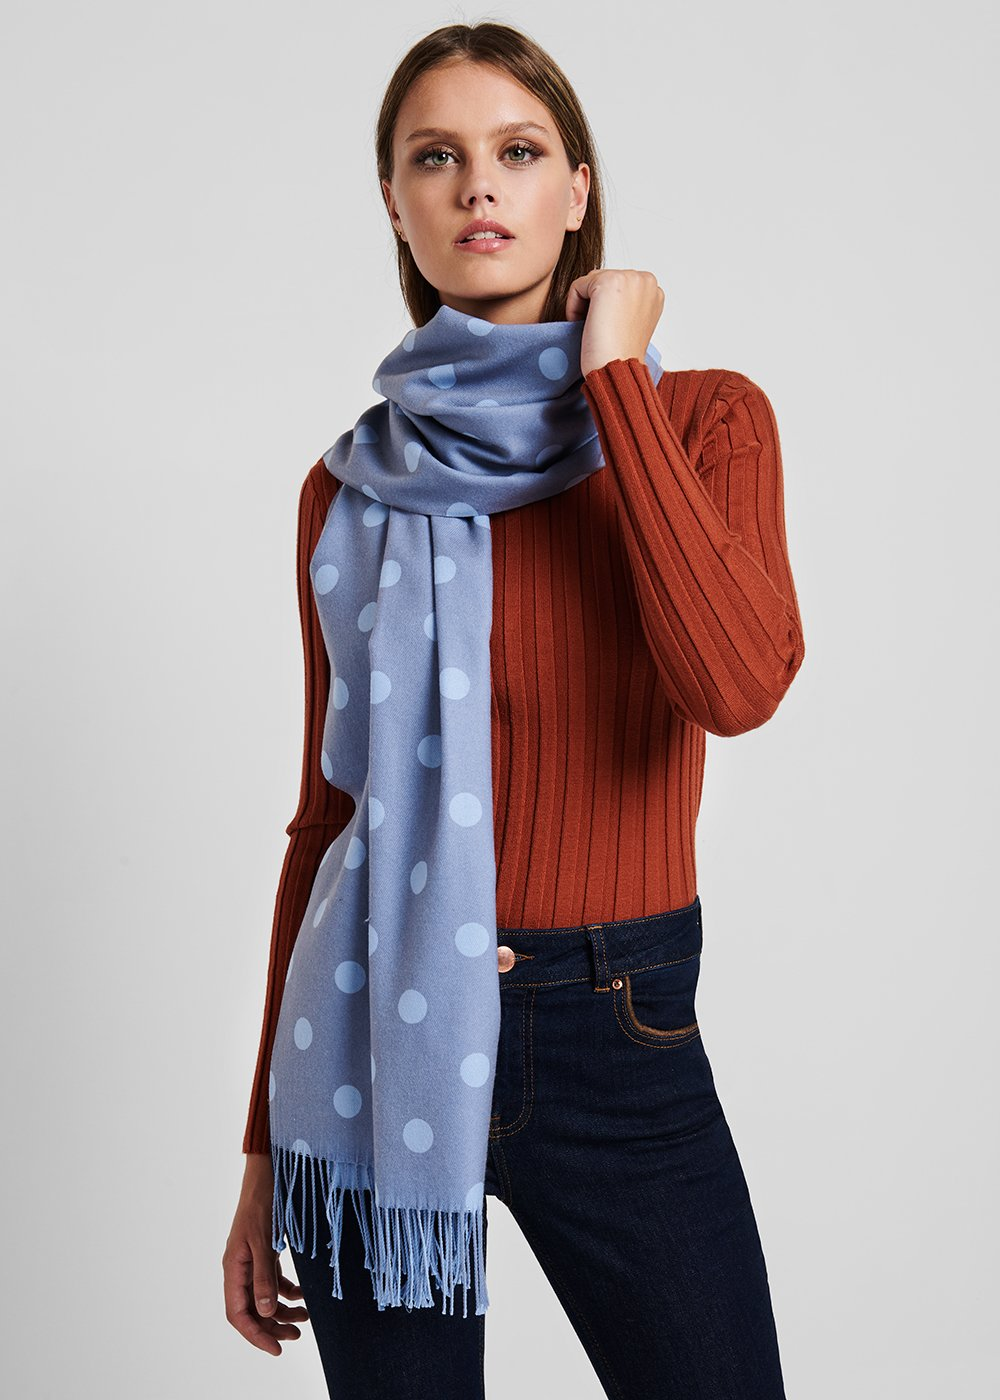 Scarf with material - coloured polka dot pattern - Materia Pois - Woman